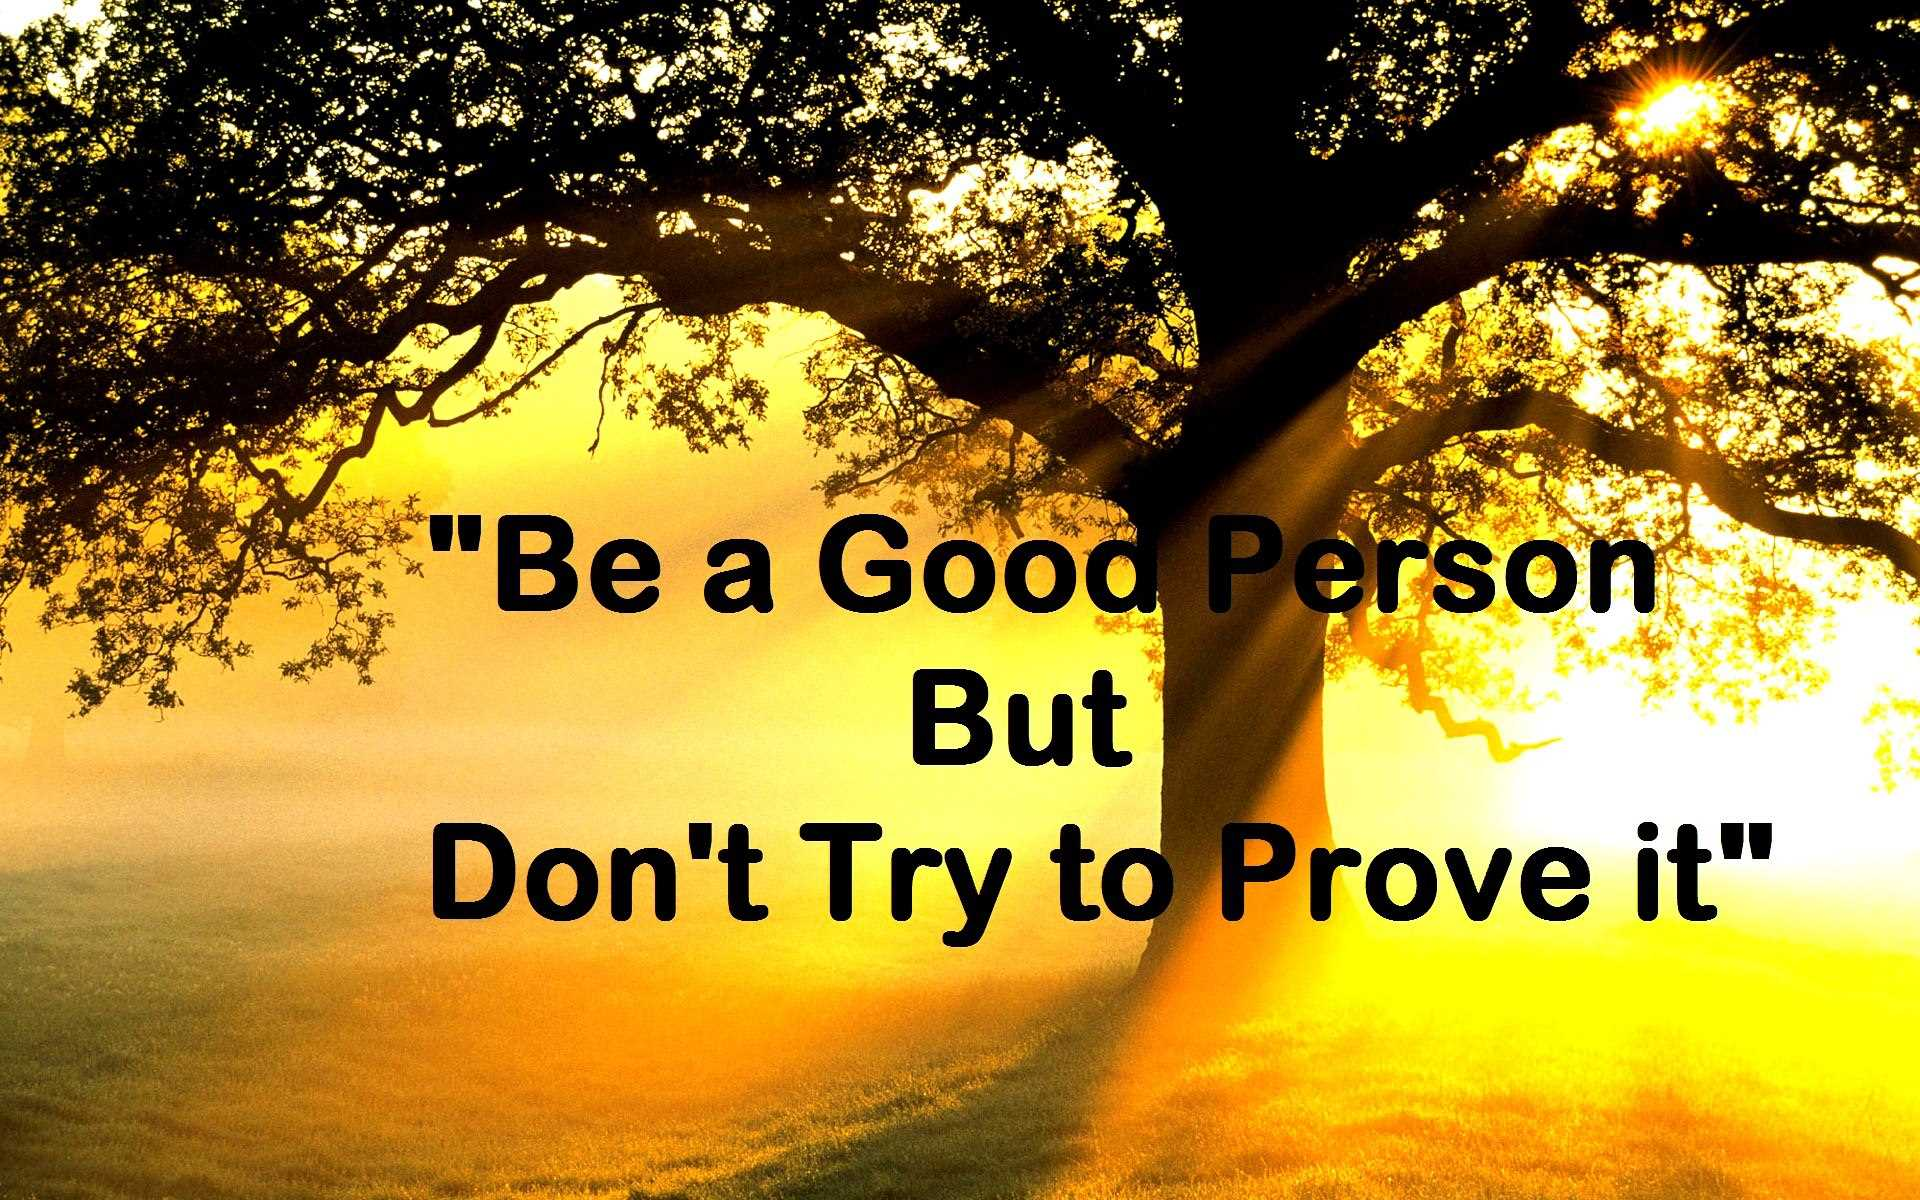 Be a good person but don't try to prove it